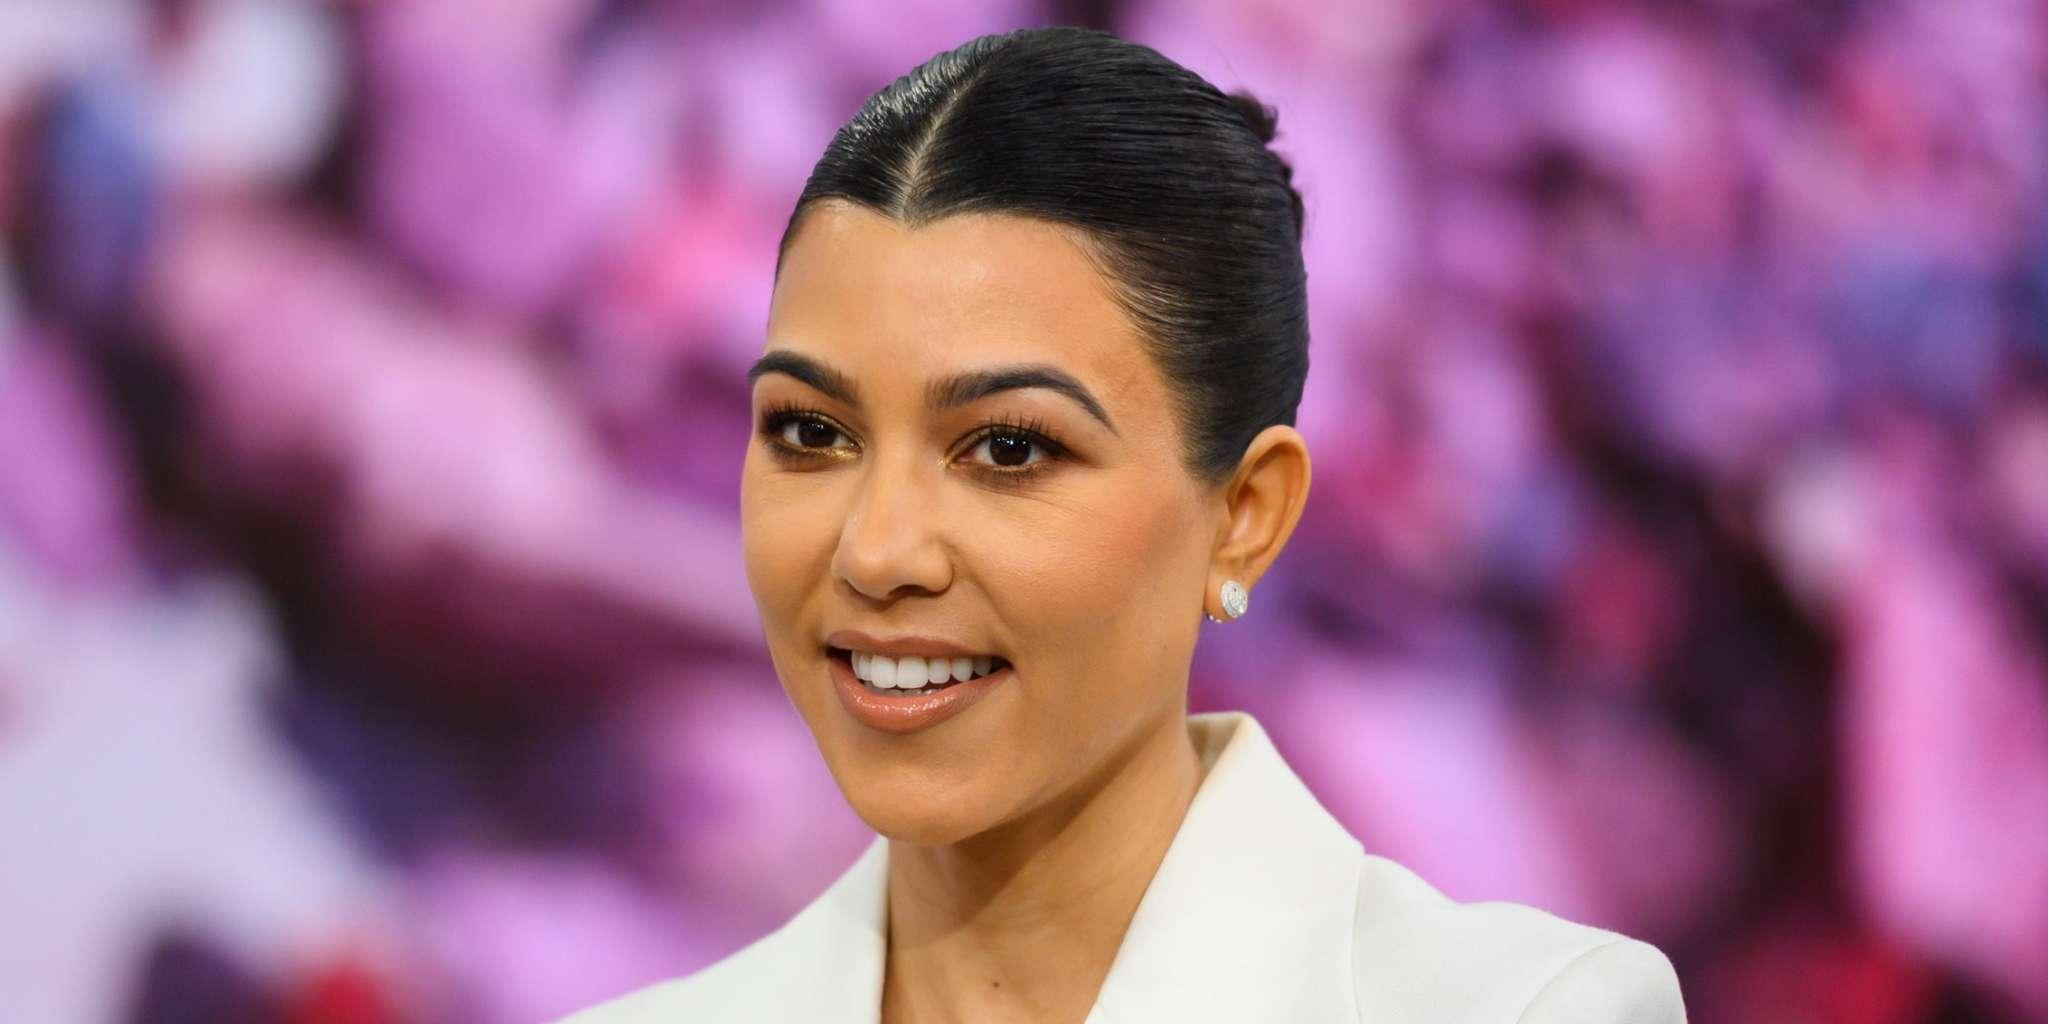 KUWK: Kourtney Kardashian Denies Pregnancy Rumors But Hints That She Really Wants To Have Another Baby!